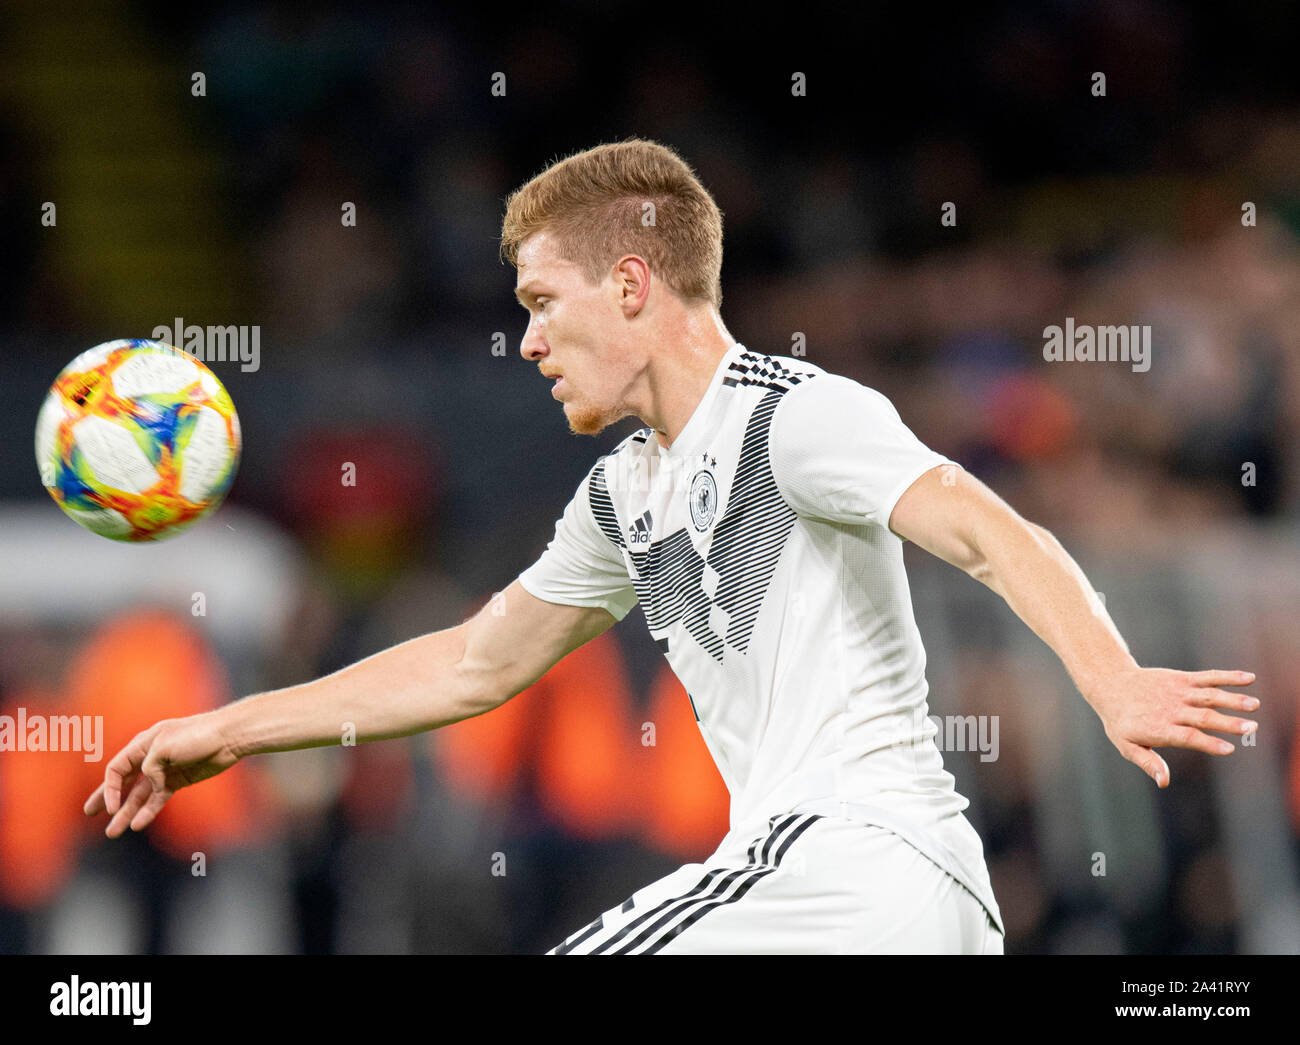 Marcel HALSTENBERG (GER) Promotion, Football Laenderpiel, Friendly Match, Germany (GER) - Argentina (ARG) 2: 2, on 09/10/2019 in Dortmund/Germany. ¬ | usage worldwide Stock Photo